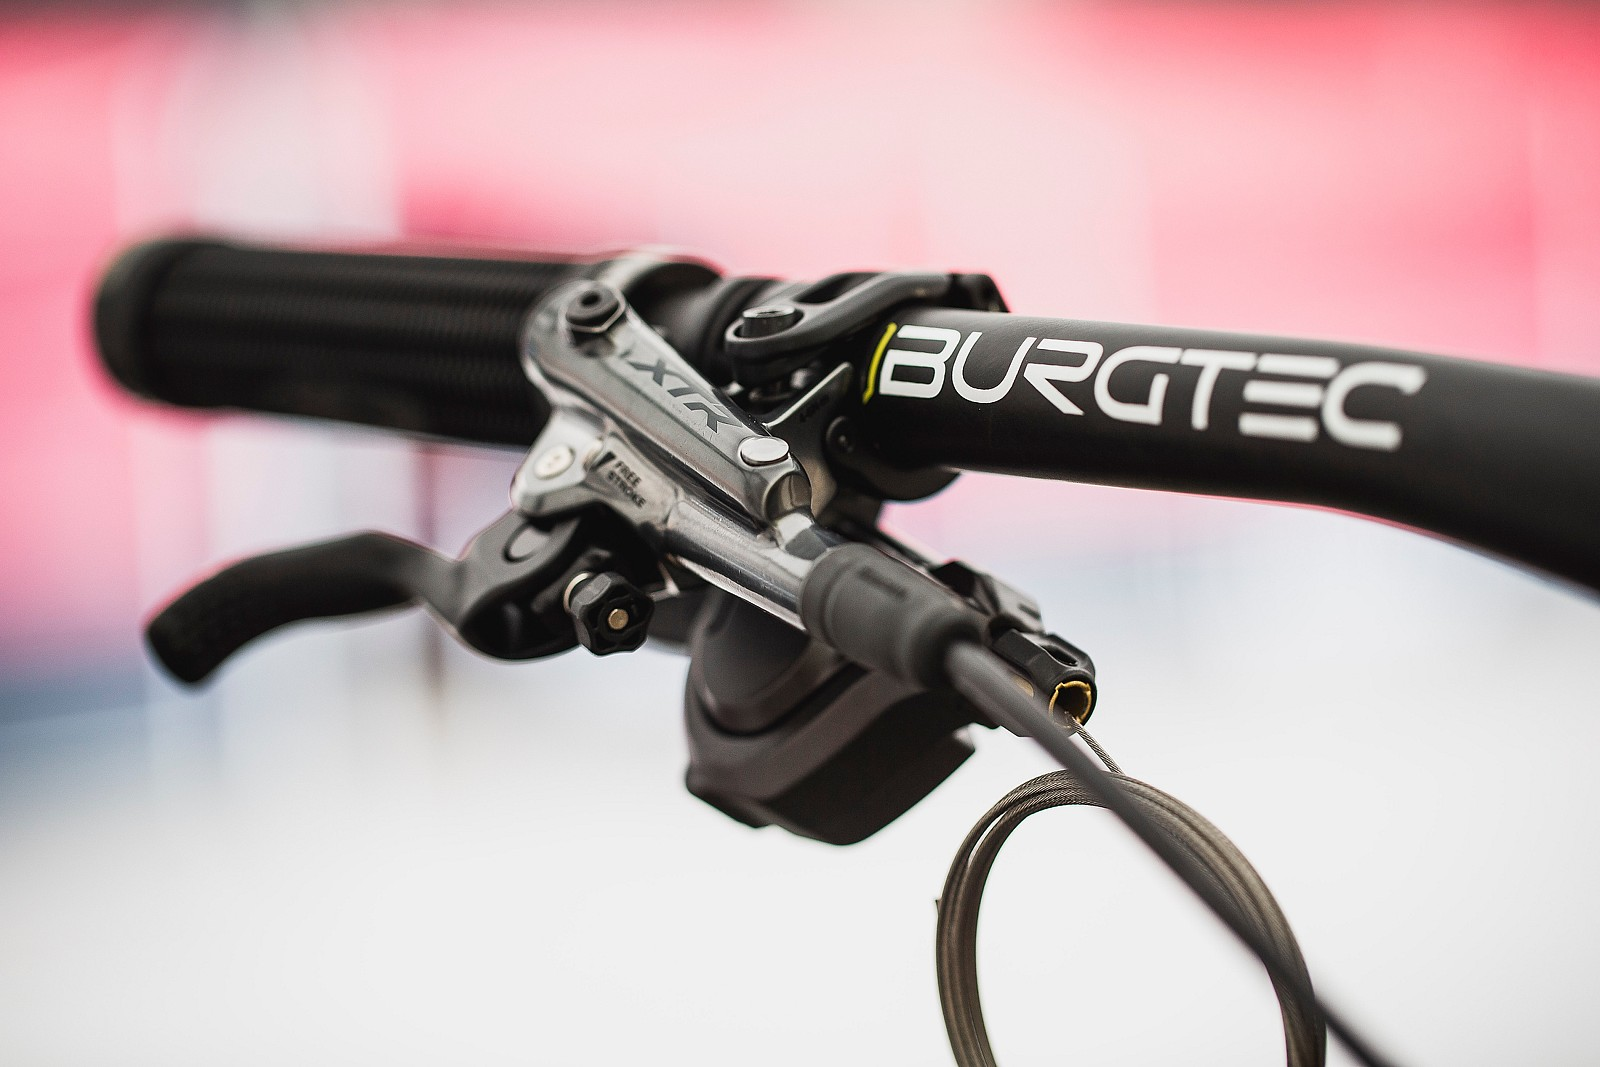 Shimano XTR Brakes for Loris - Loris Vergier 2019 World Cup Downhill Photos - Mountain Biking Pictures - Vital MTB